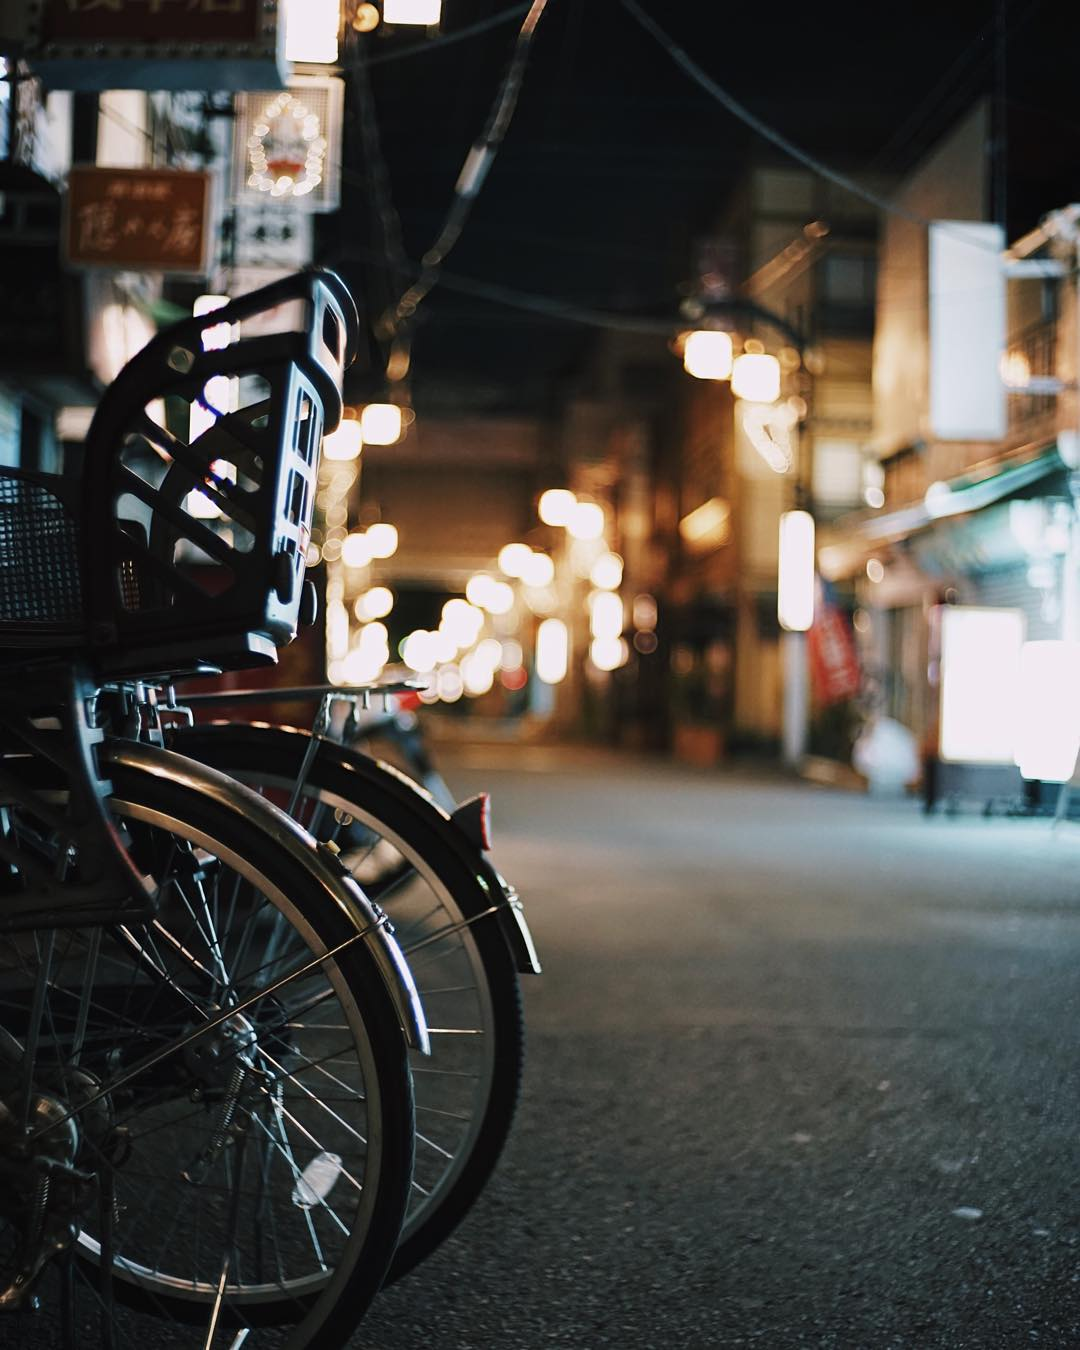 Night biking travel wanderlust night tokyo